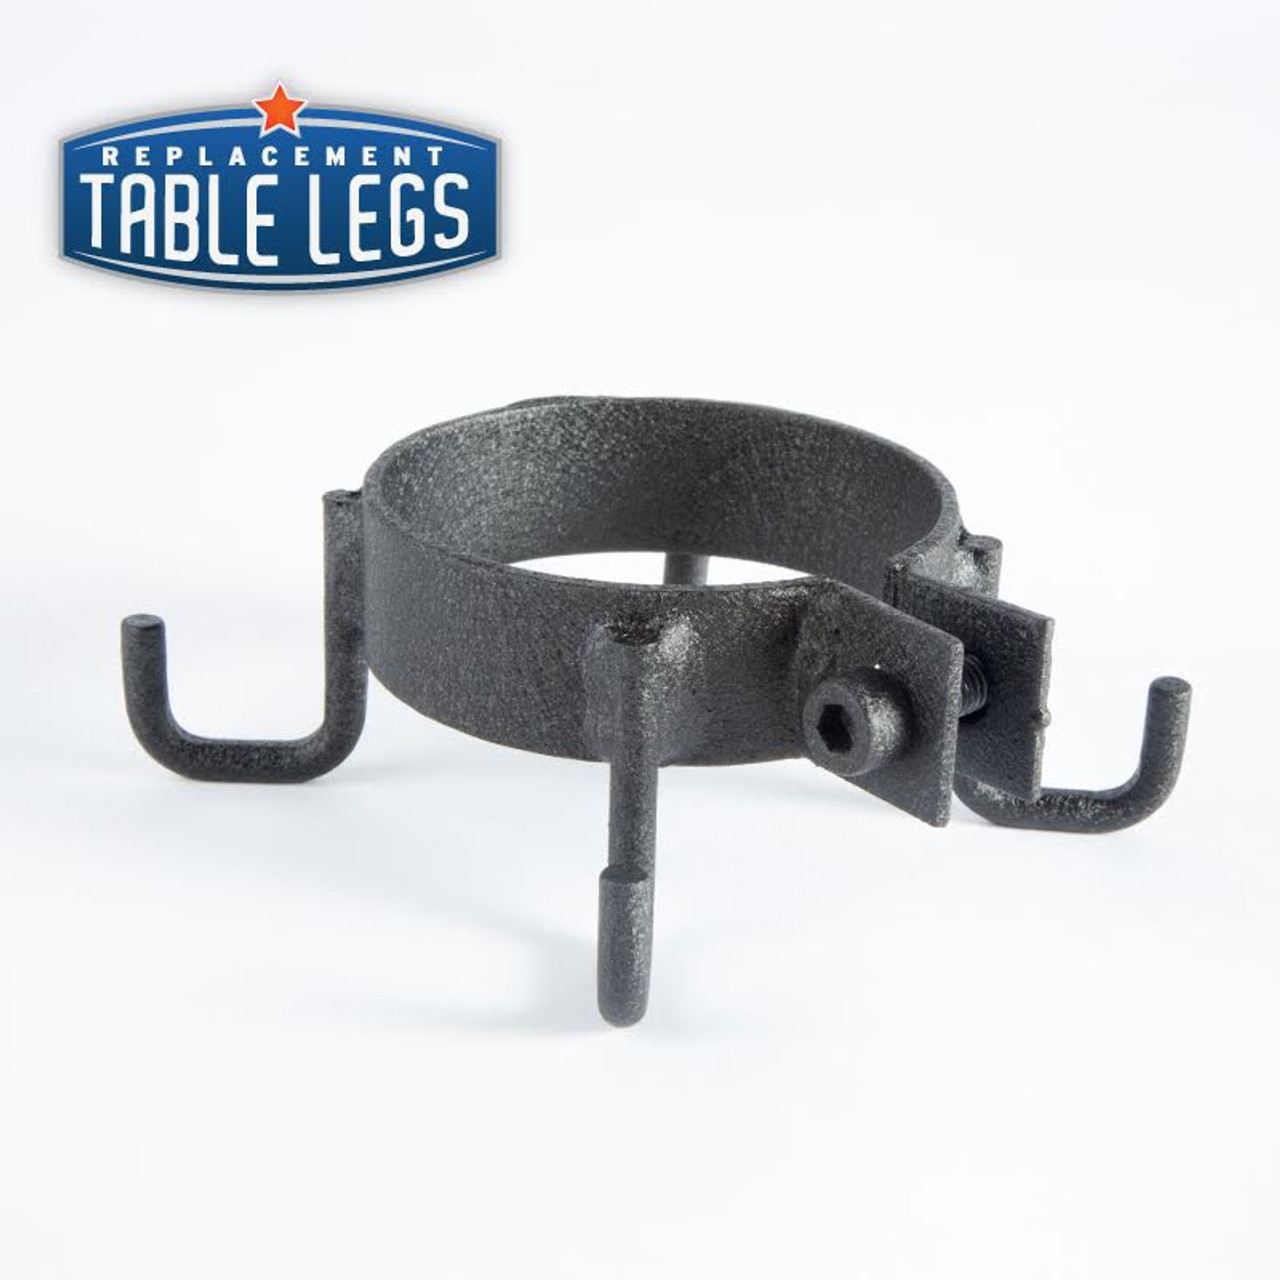 Rotated 3/4 view cast iron purse hook collar